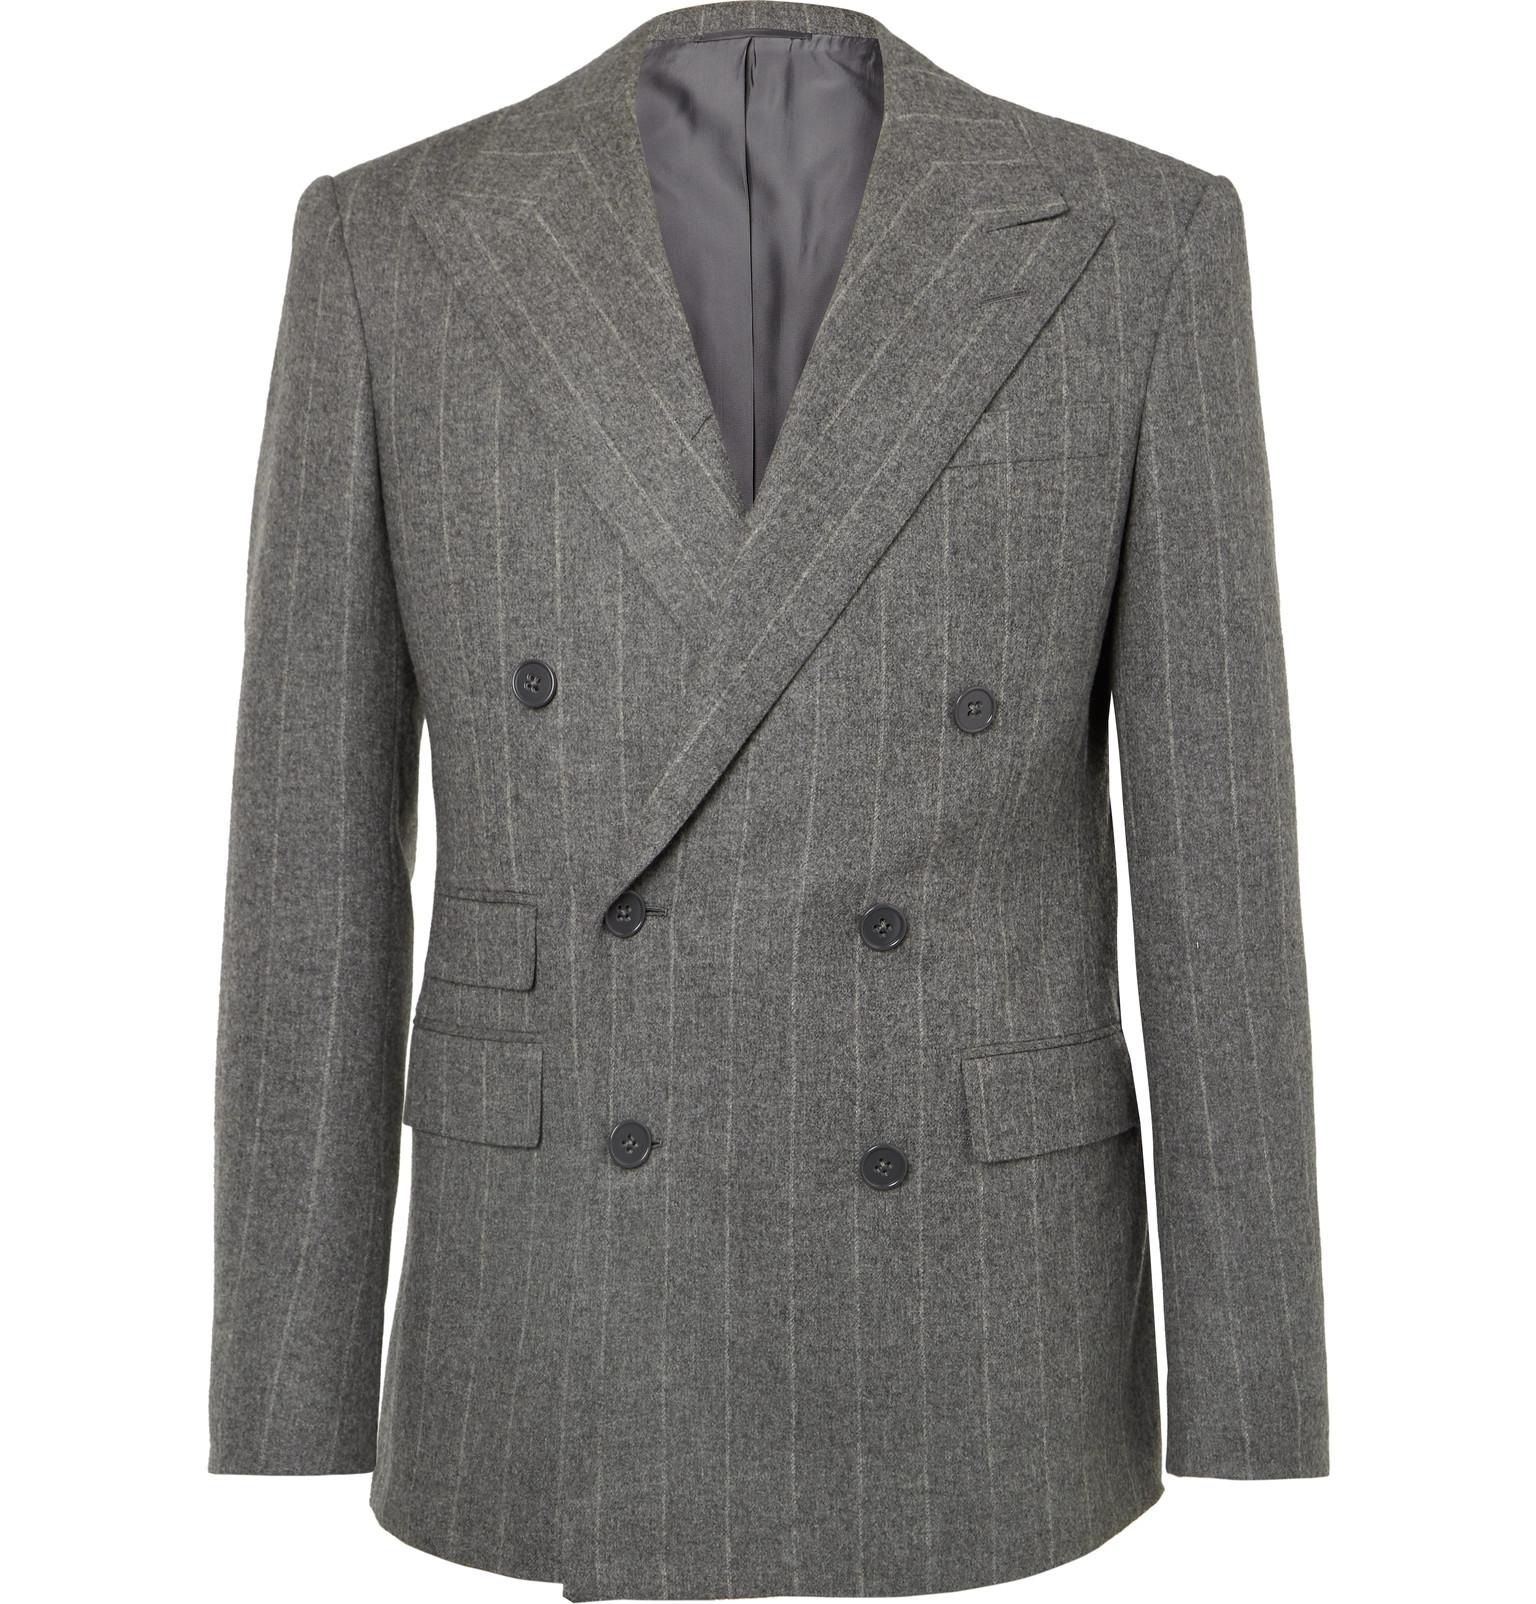 a7a054b7928f Ralph Lauren Purple Label. Men s Gray Grey Gregory Double-breasted  Pinstriped Wool Suit Jacket